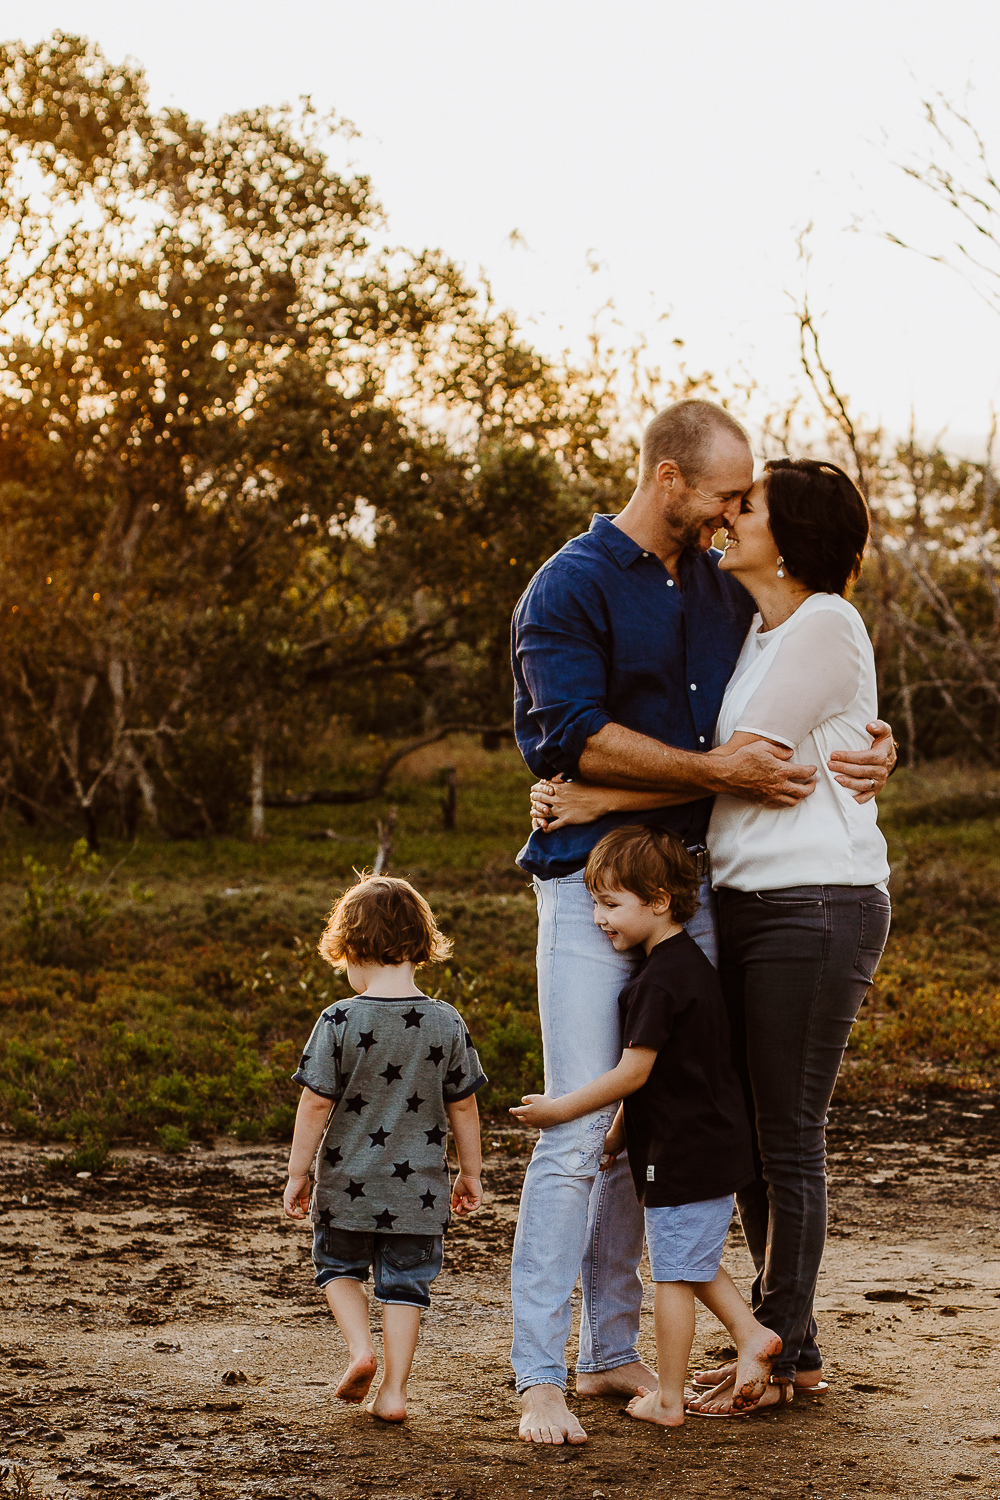 Family Photography Brisbane | Rebecca Banush Photography-23.jpg